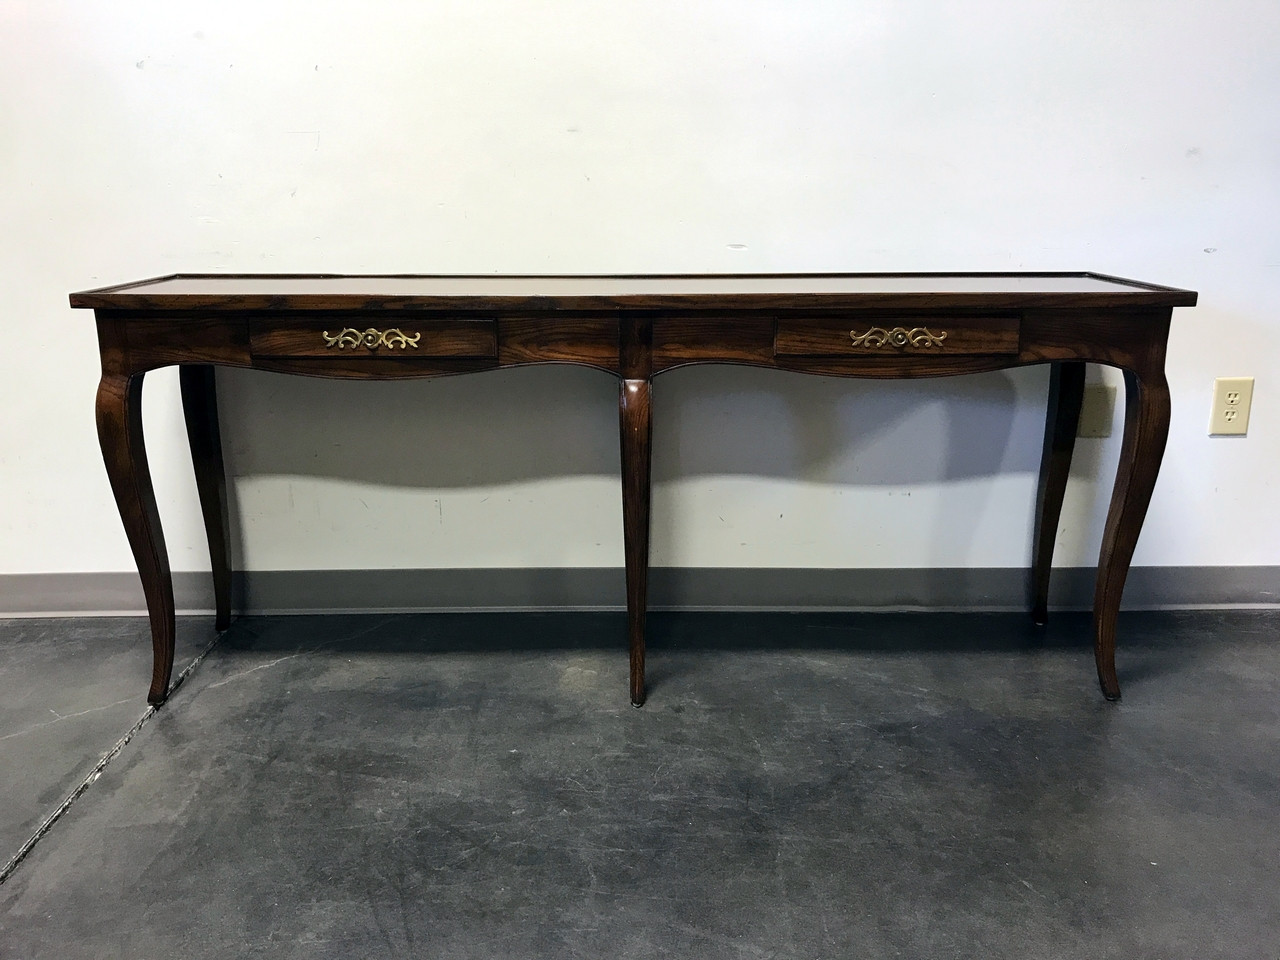 SOLD OUT   HENREDON Inlaid Oak French Country Style Console / Sofa Table